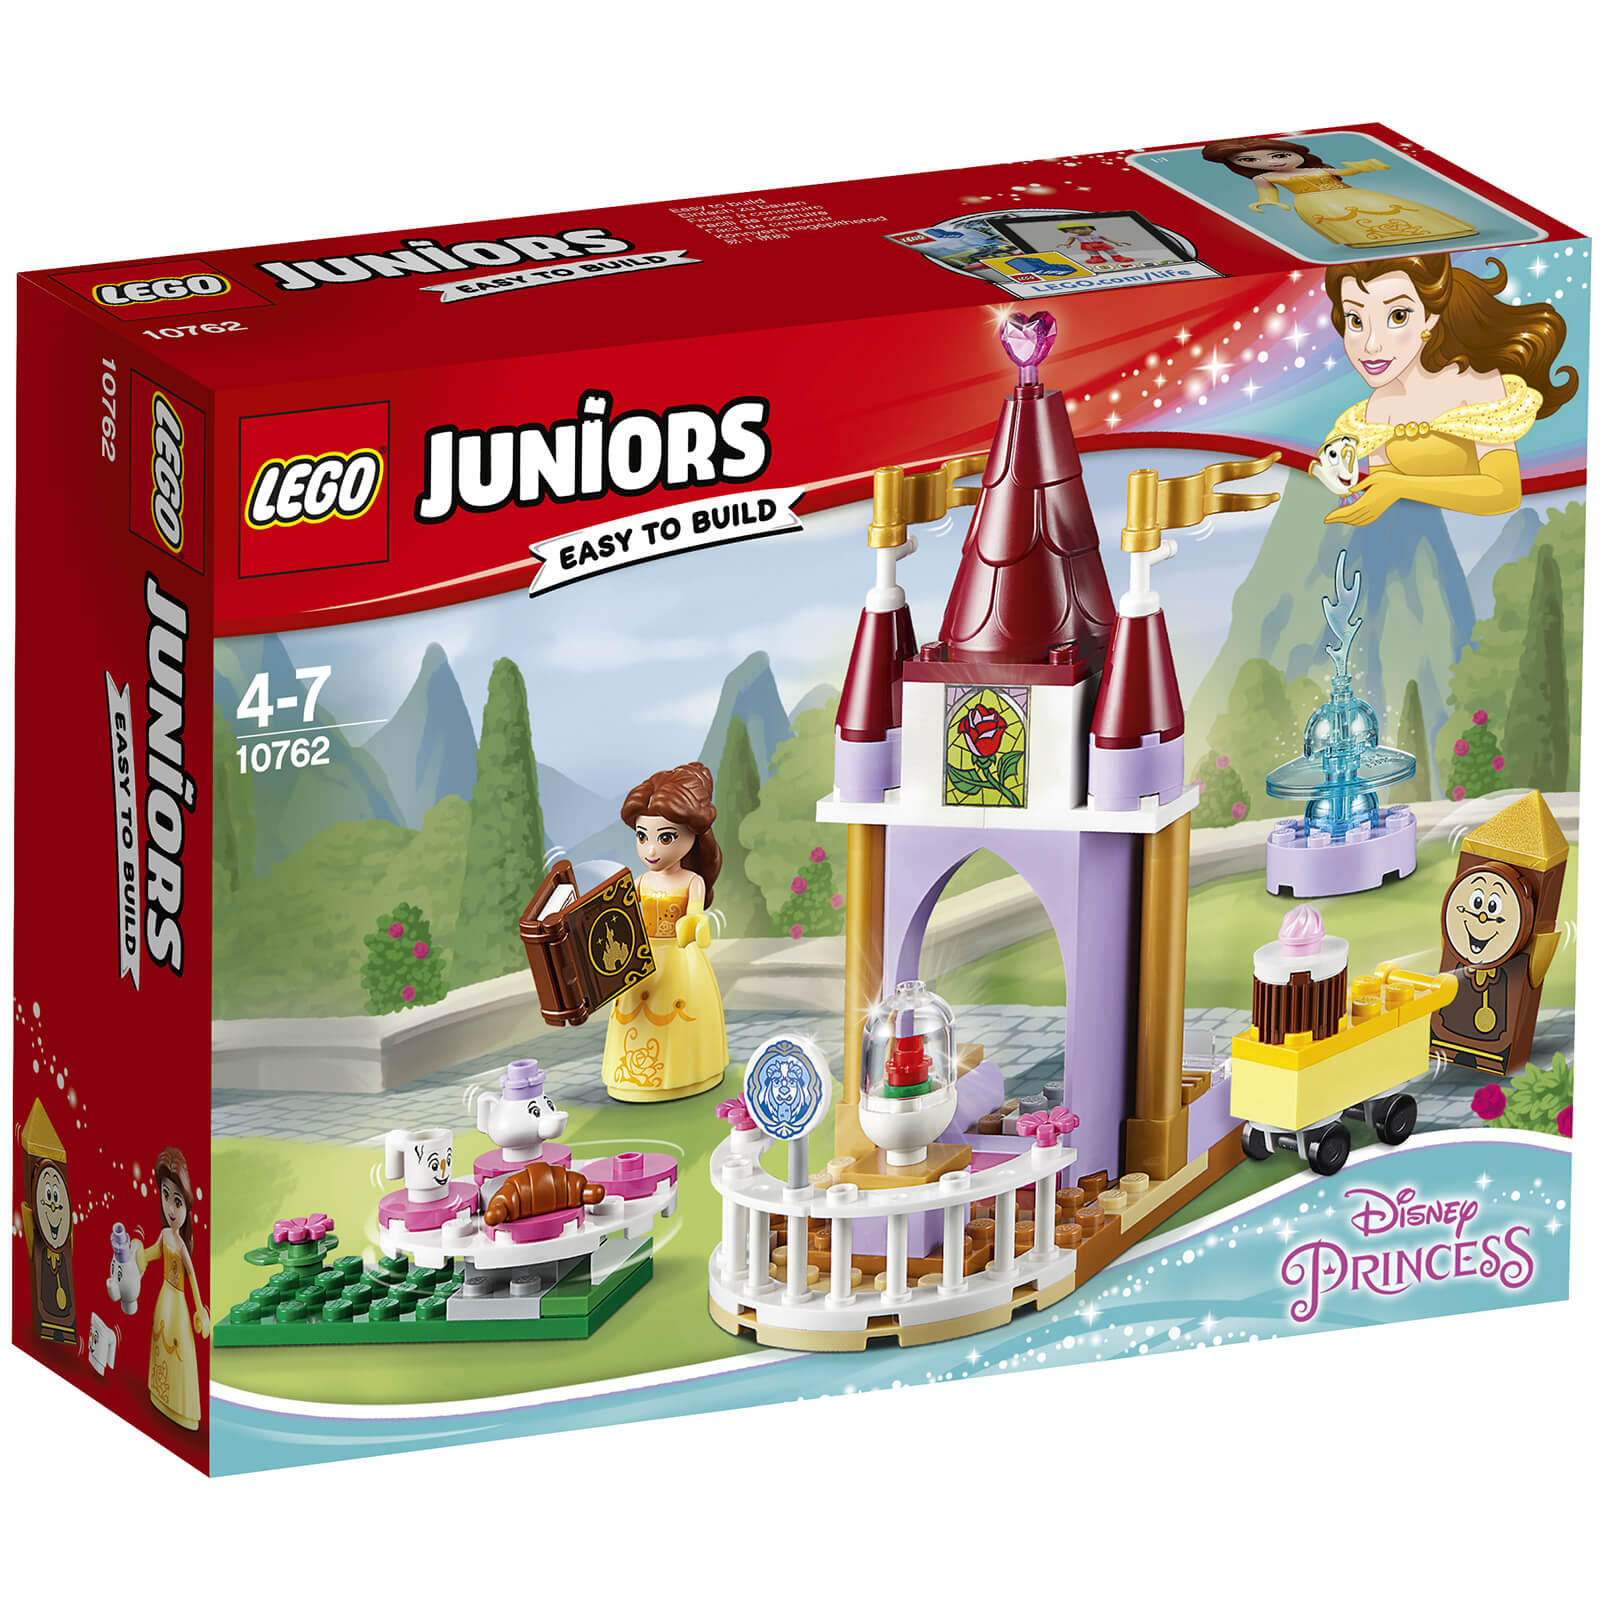 LEGO Juniors Disney Princess: Belle